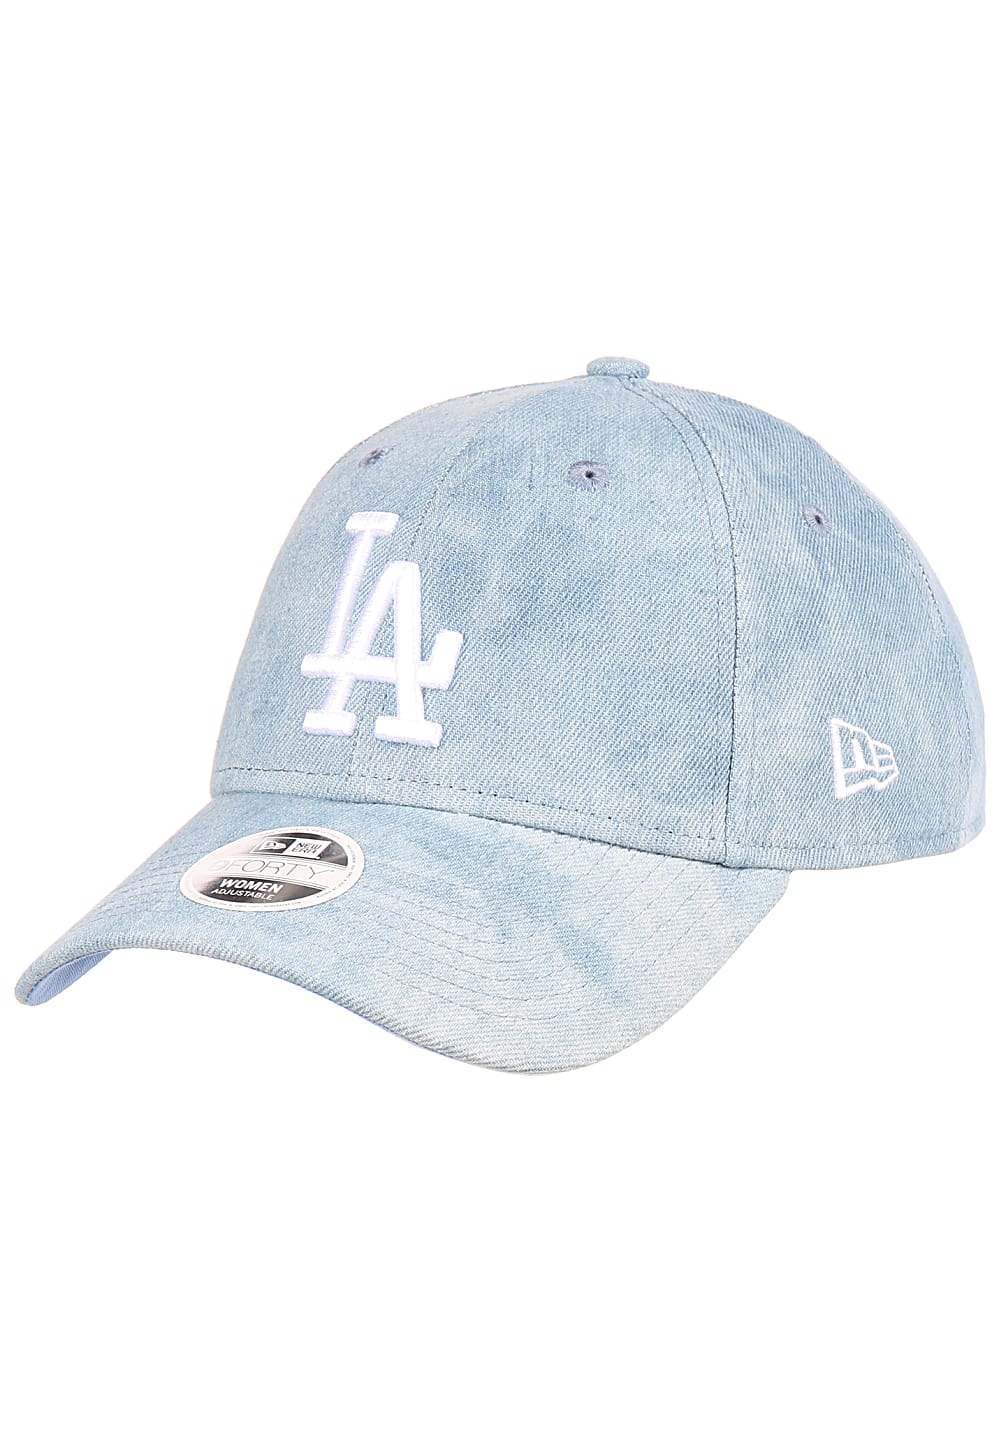 Muetzen für Frauen - NEW Era 9Forty Tie Dye Los Angeles Dodgers Cap für Damen Blau  - Onlineshop Planet Sports